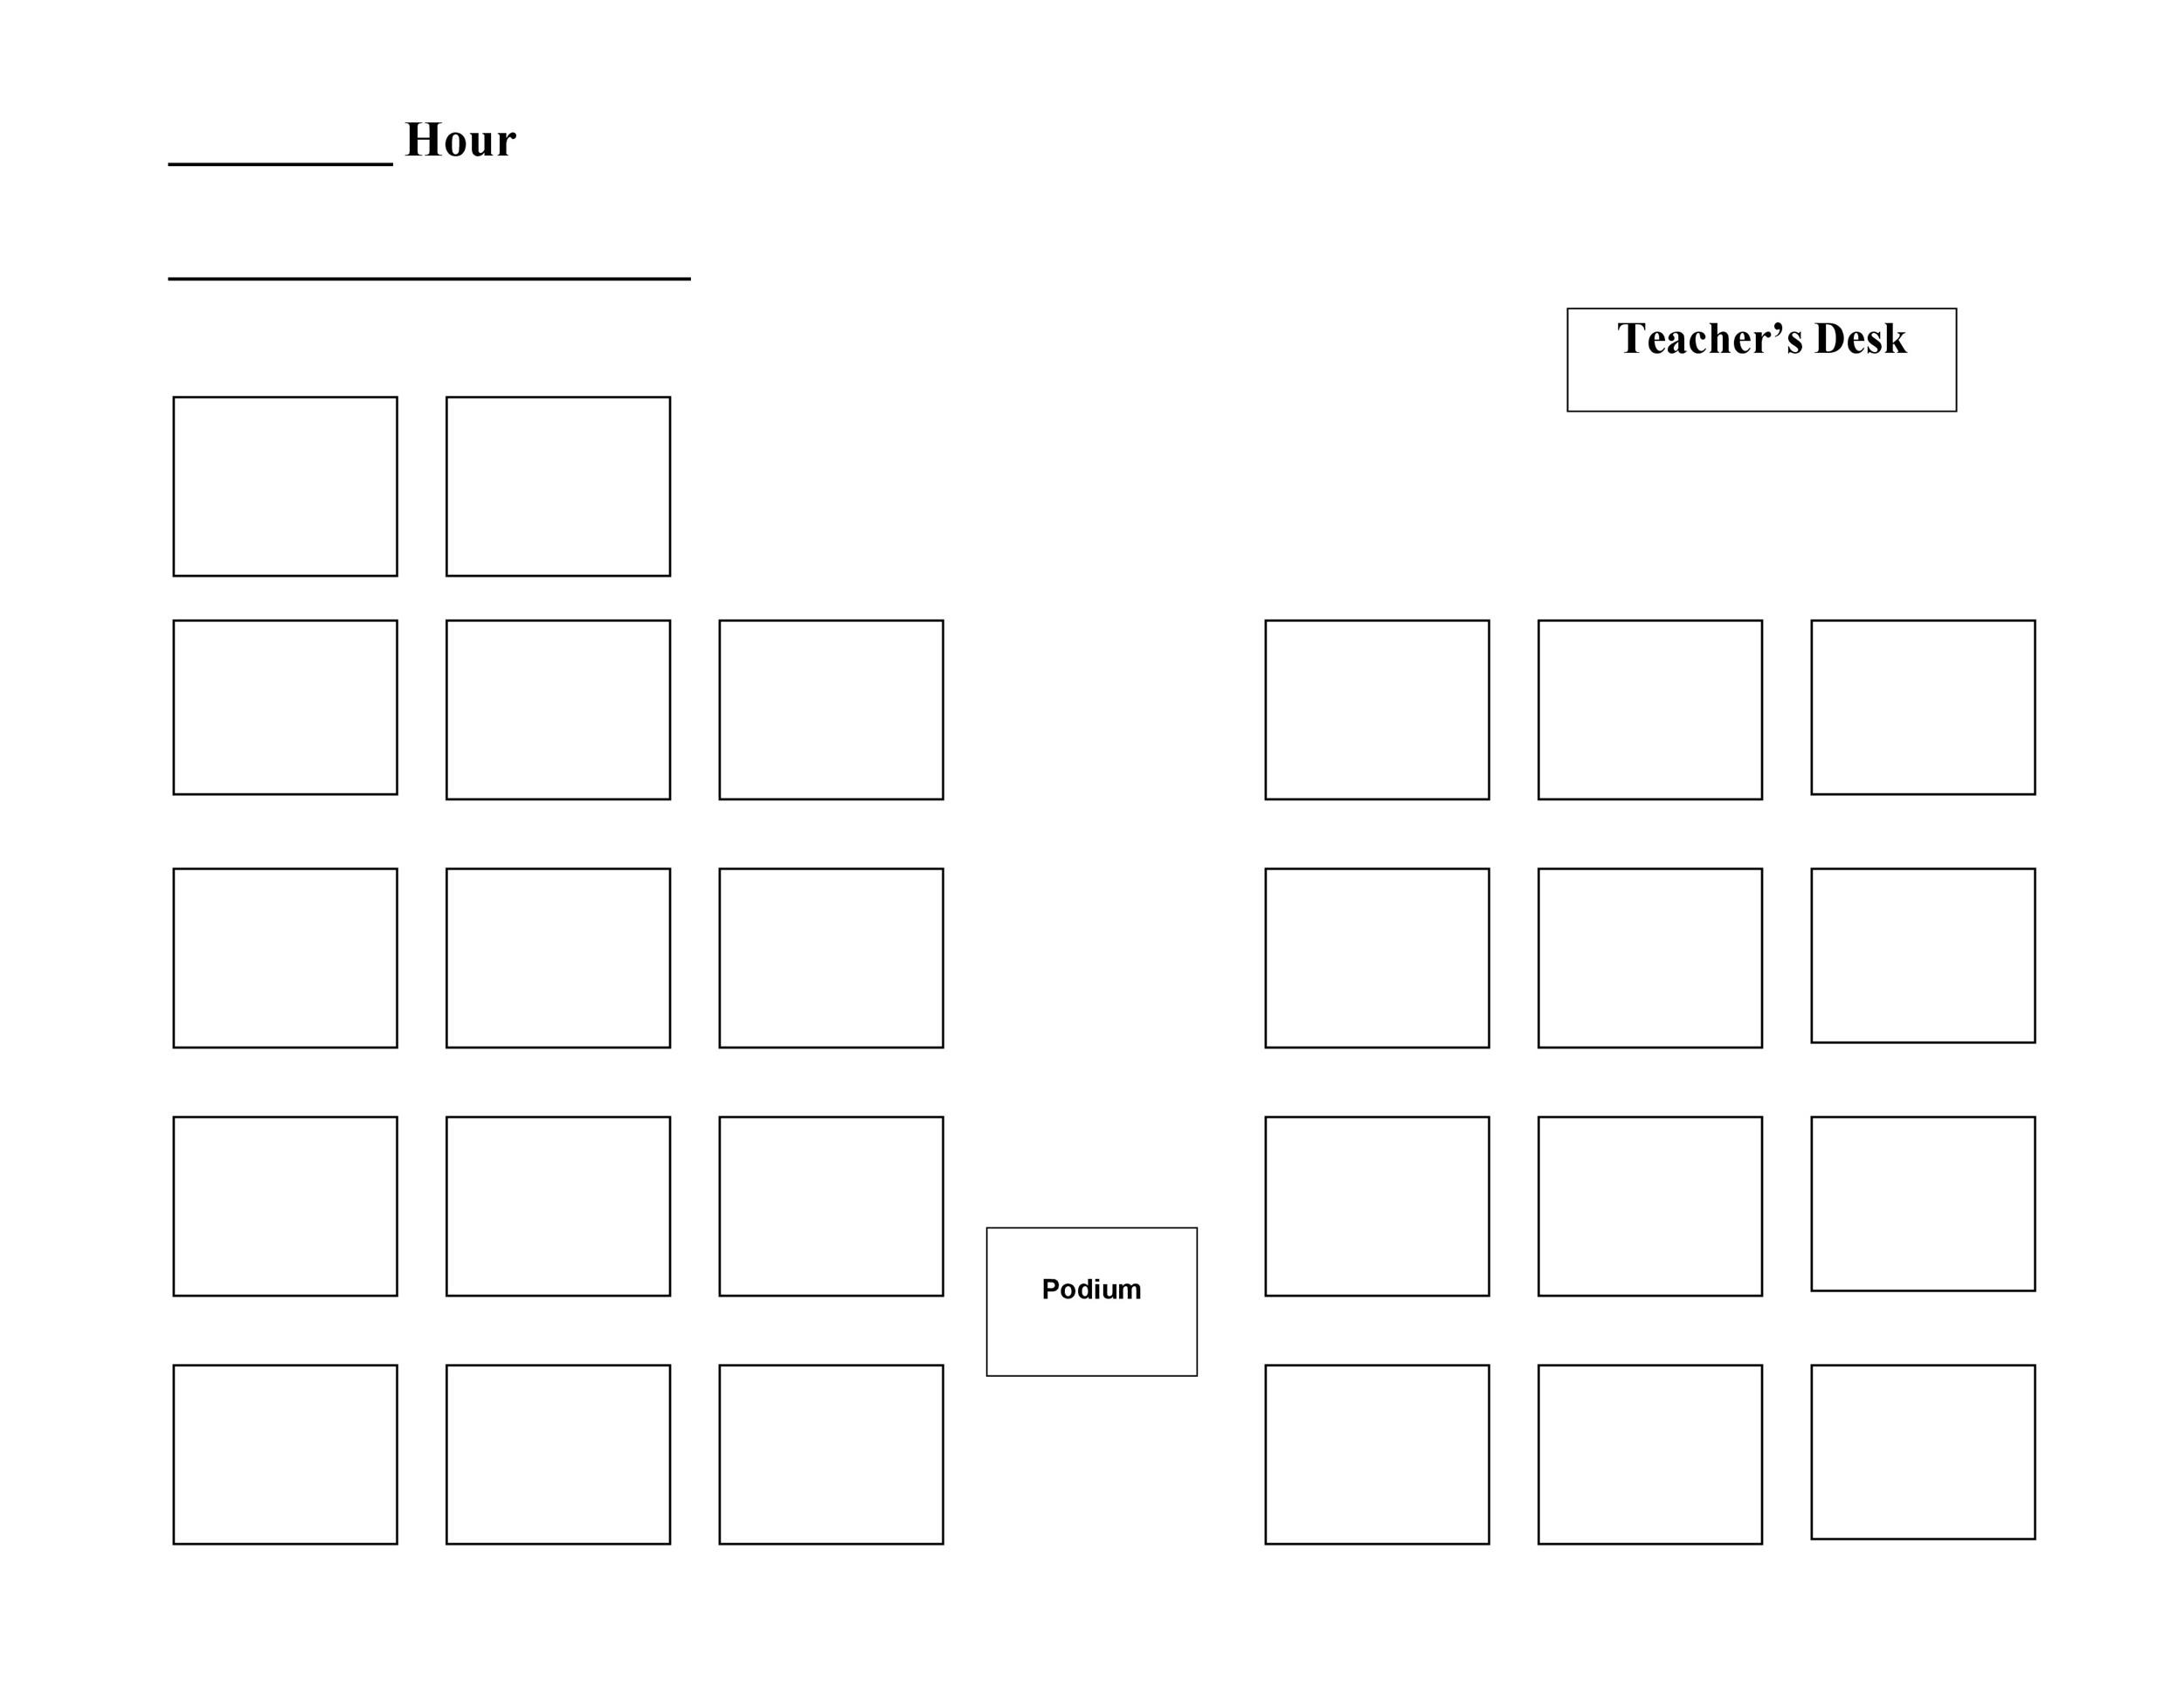 Seating Chart Templates - 28 Images - Classroom Seating Chart